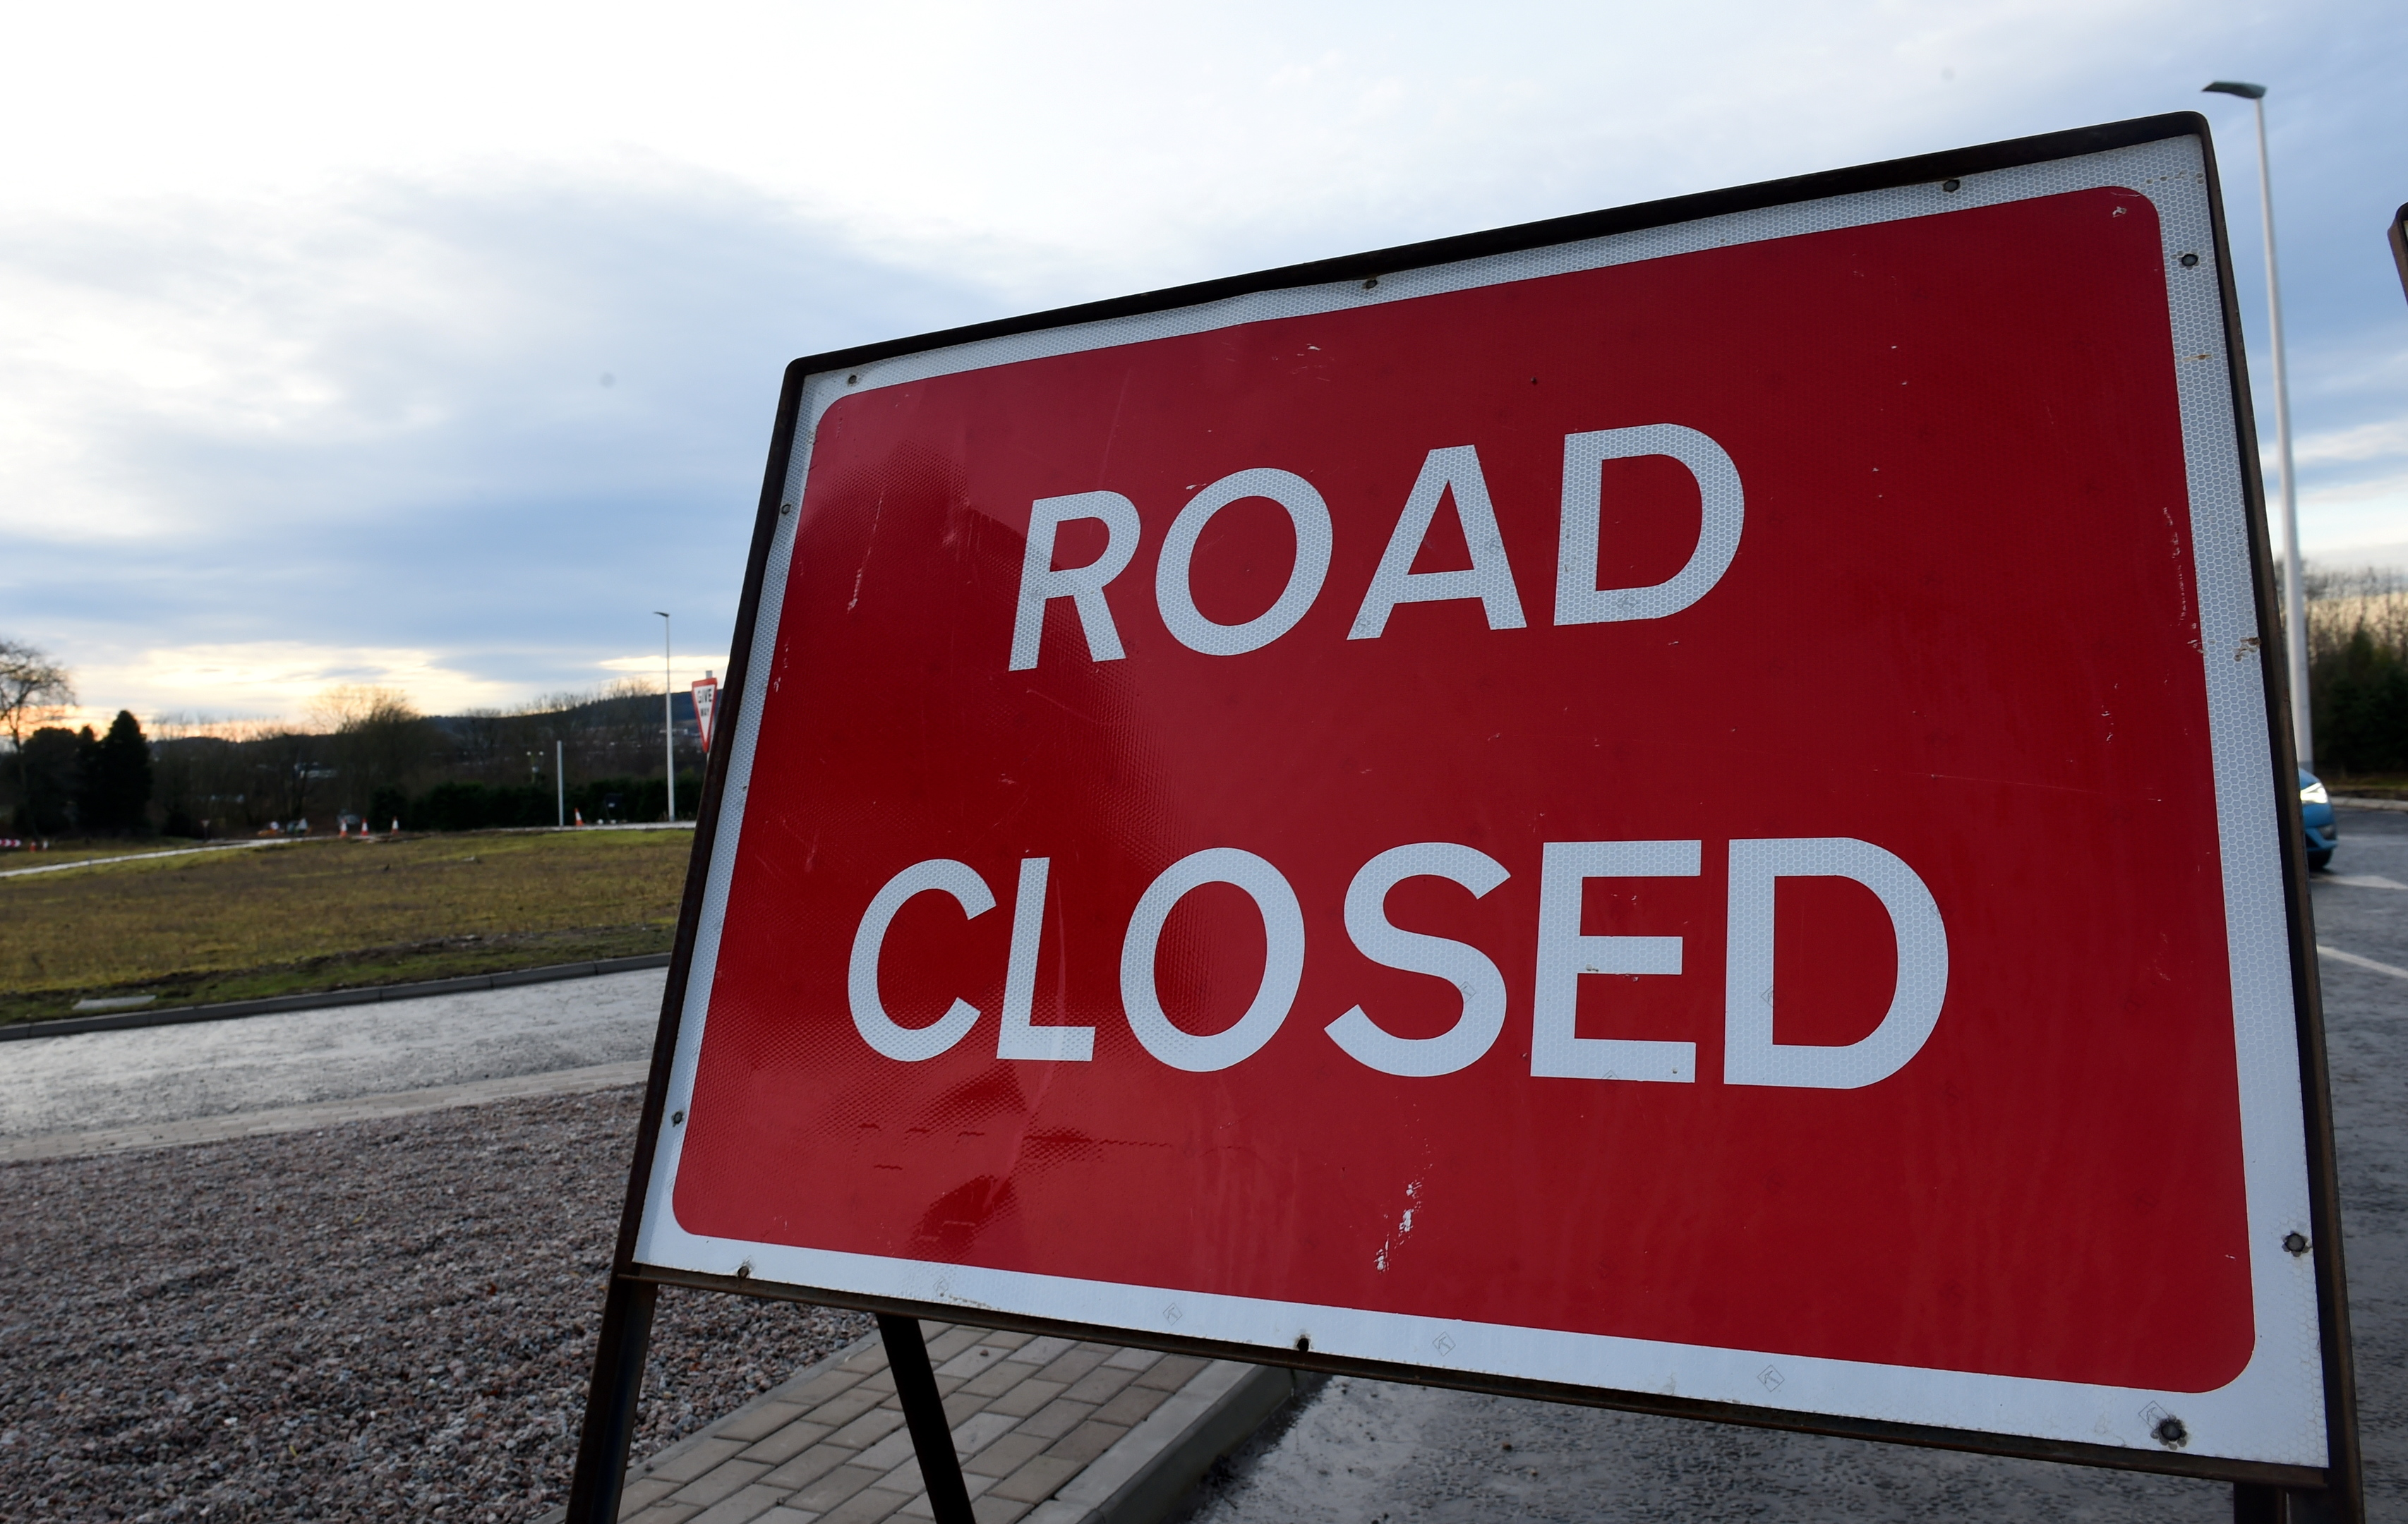 A82 closed due to accident